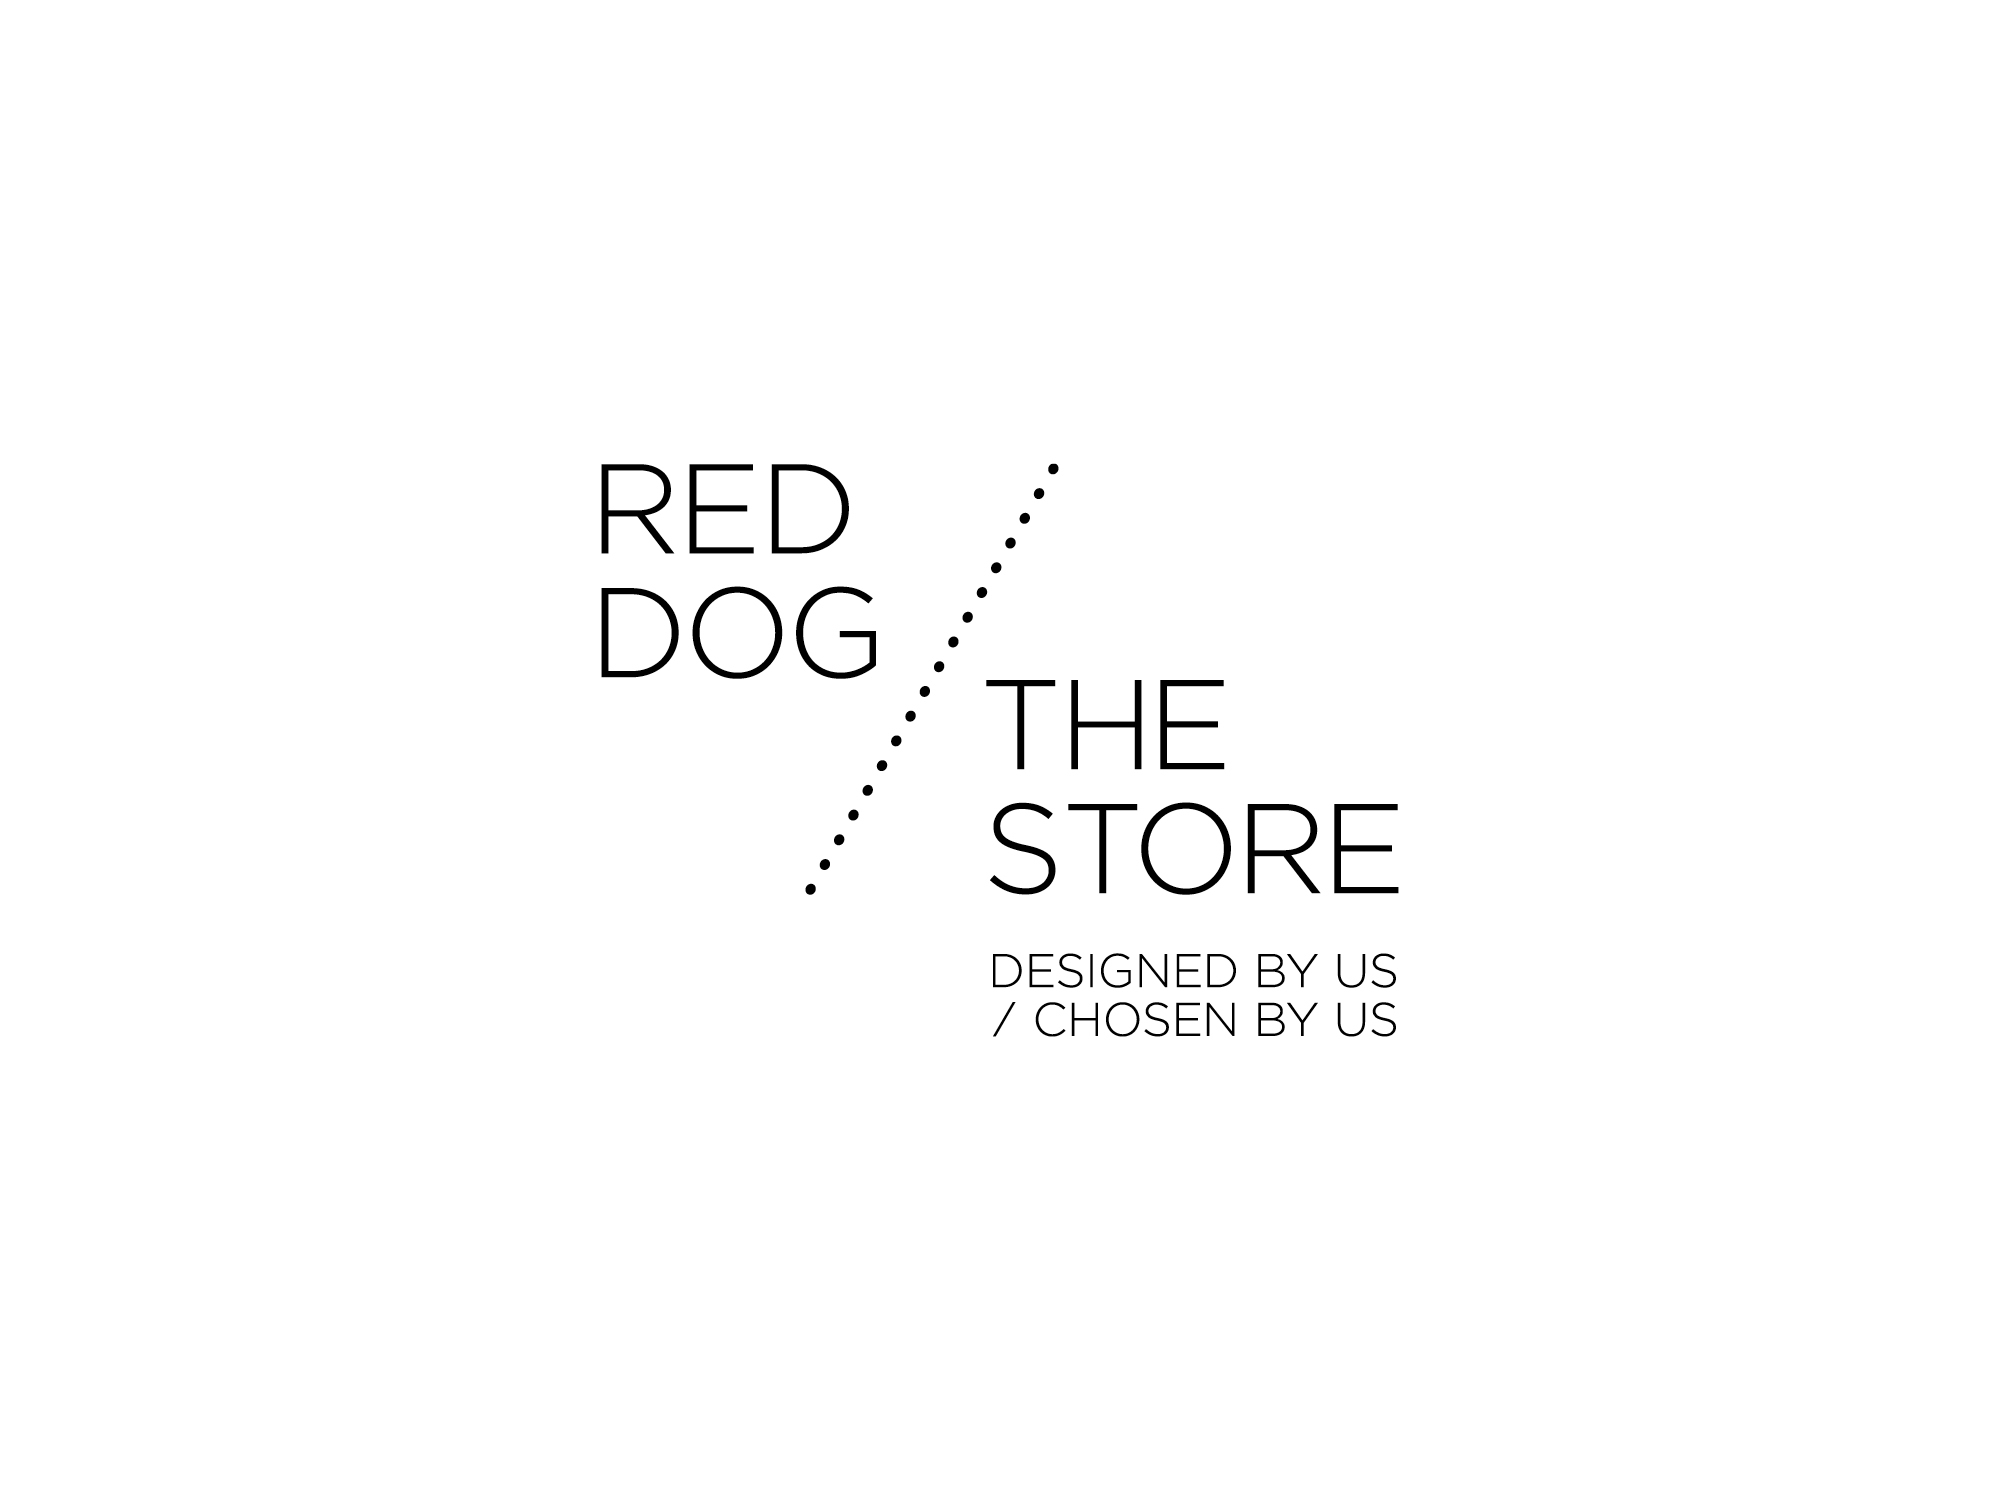 Cover image: Red Dog / The Store (2011)